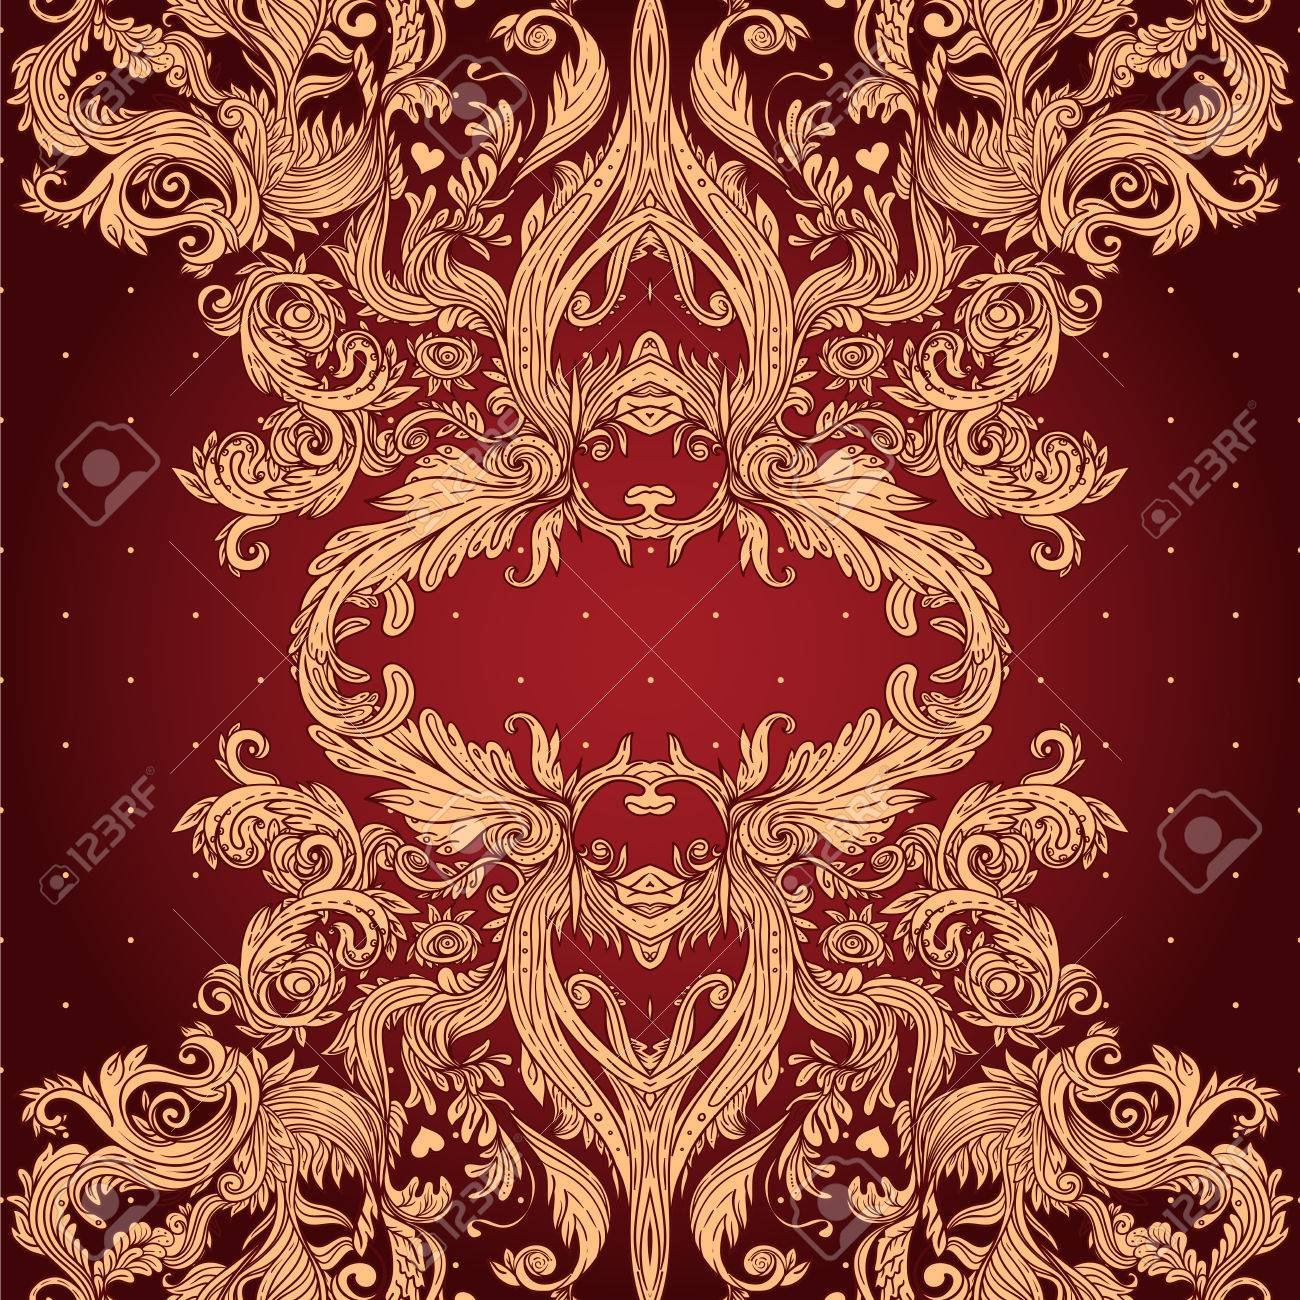 Vintage background ornate baroque pattern vector illustration stock - Vintage Background Ornate Baroque Pattern Vector Illustration Stock Vector 33592468